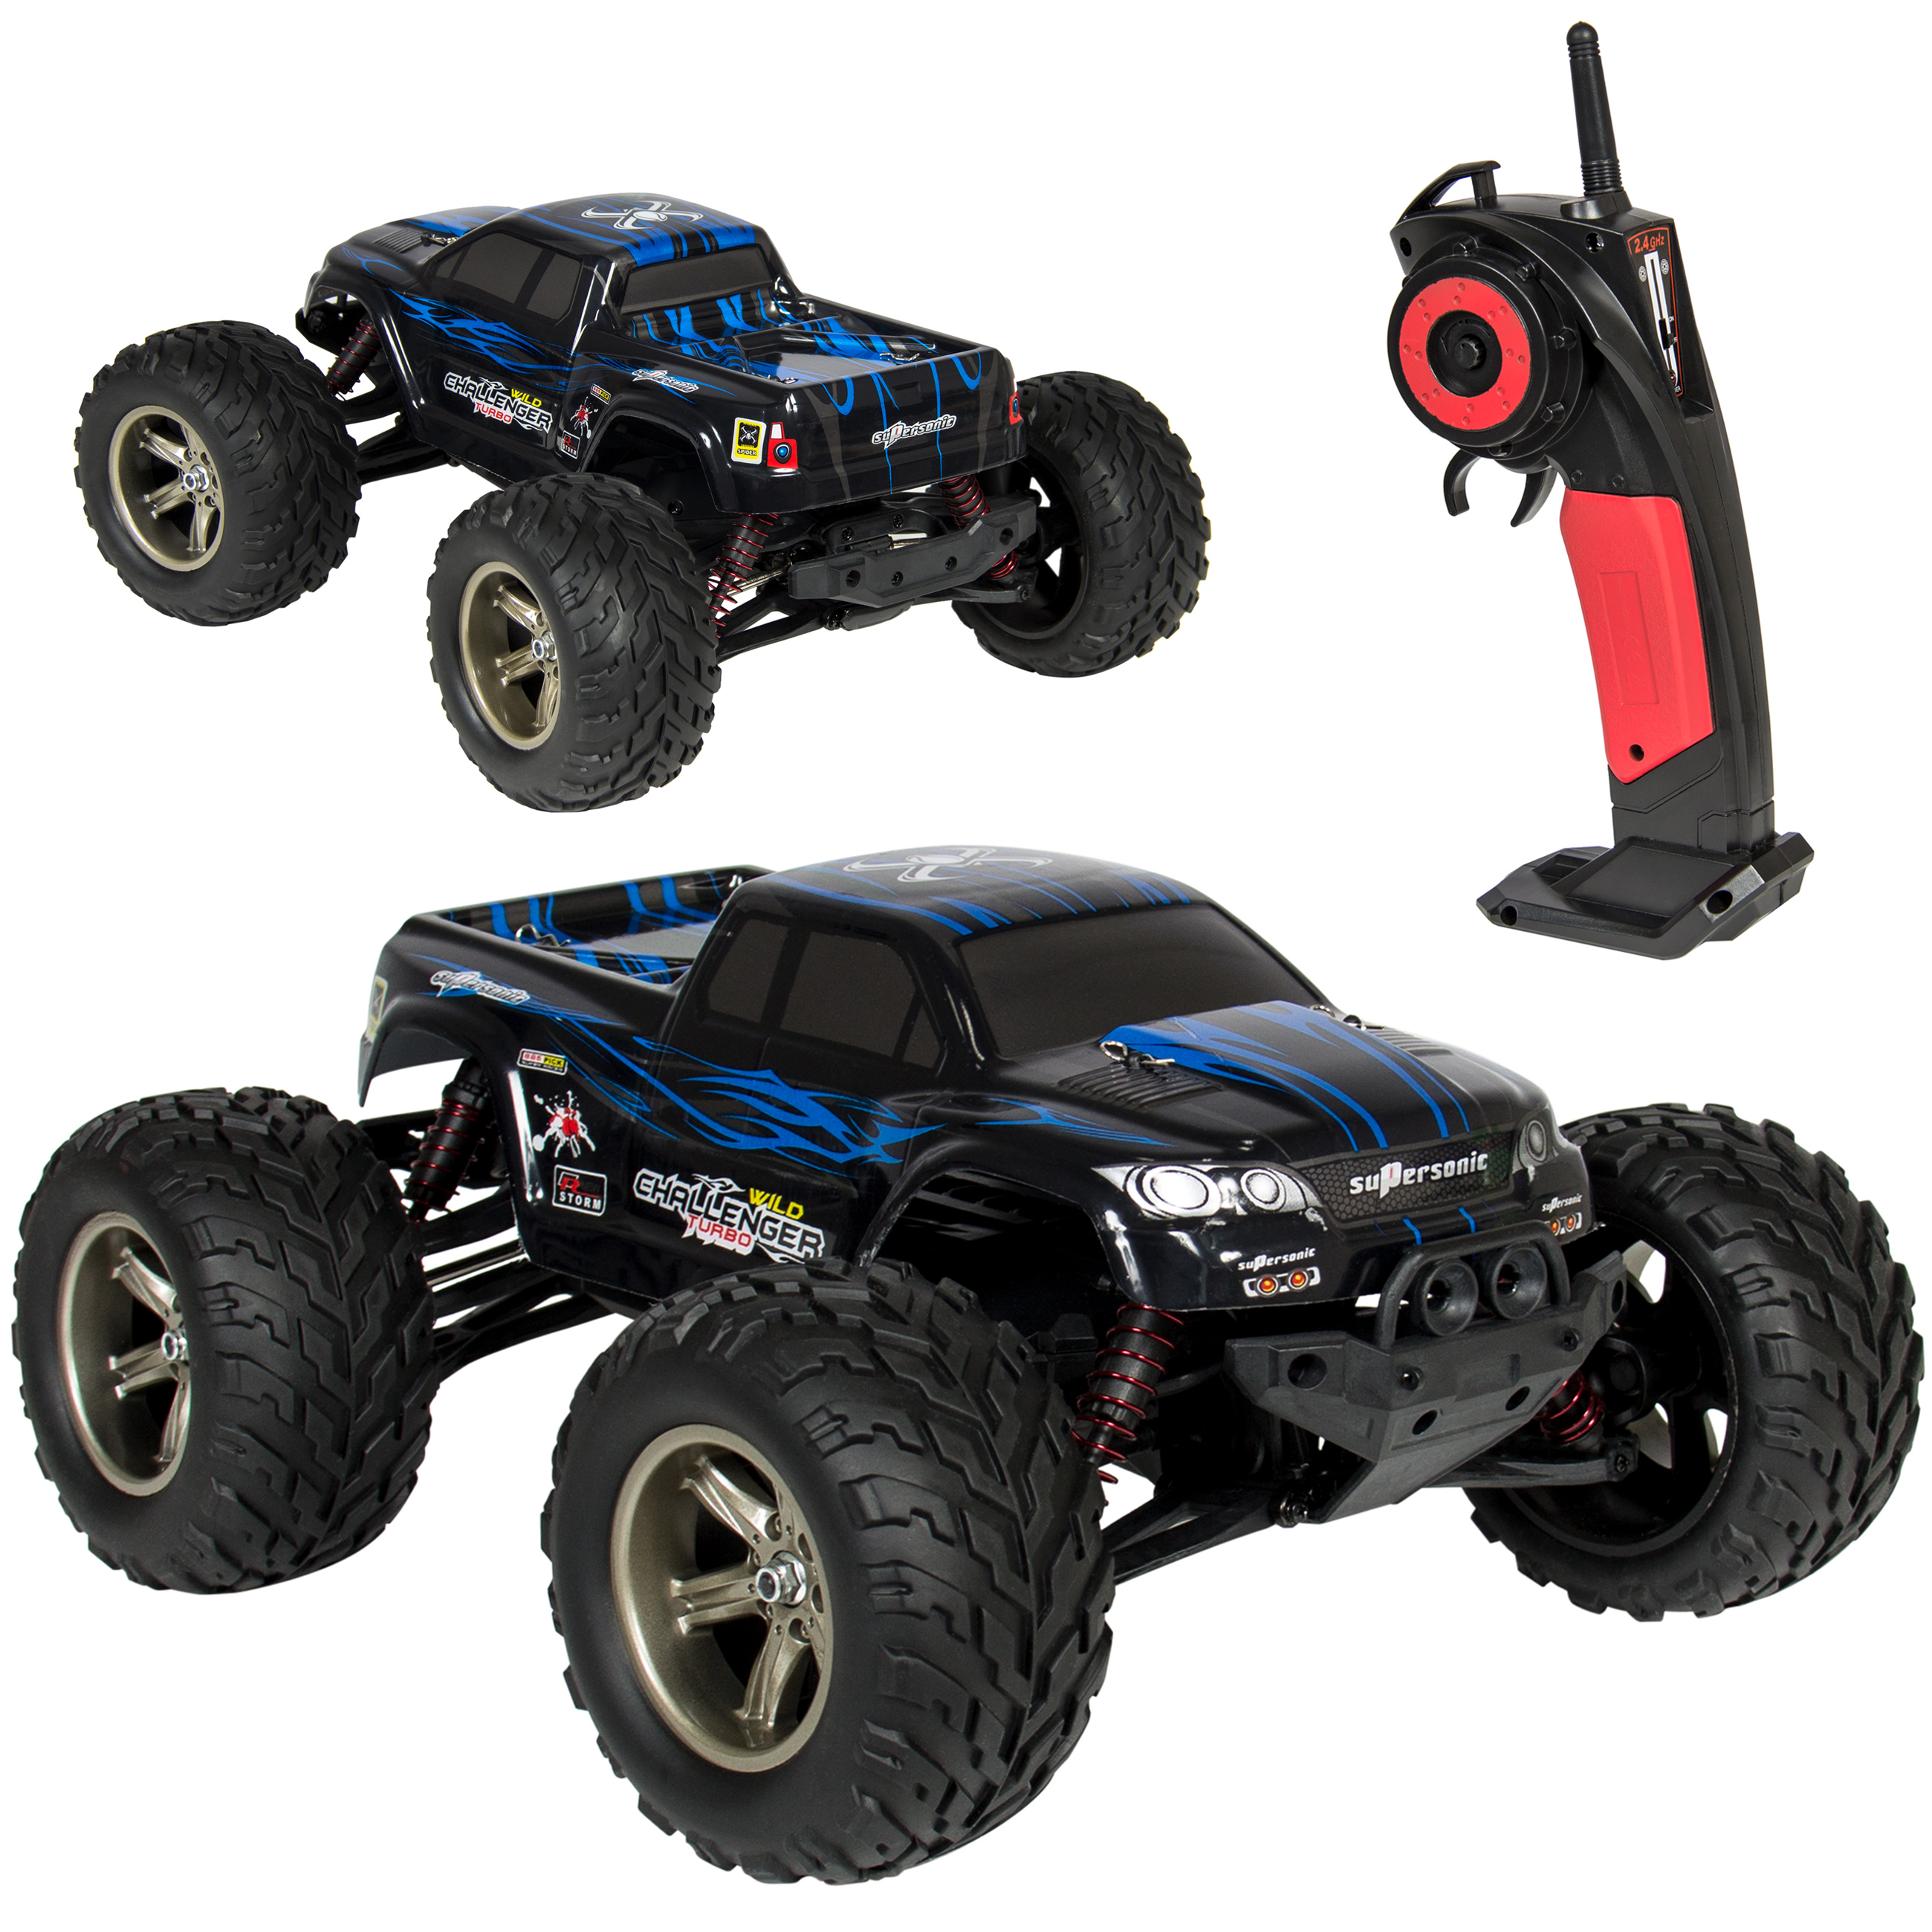 Best Choice Products 1/12 Scale 2.4GHZ Remote Control Truck Electric RC Car High Speed Monster Off Road Black